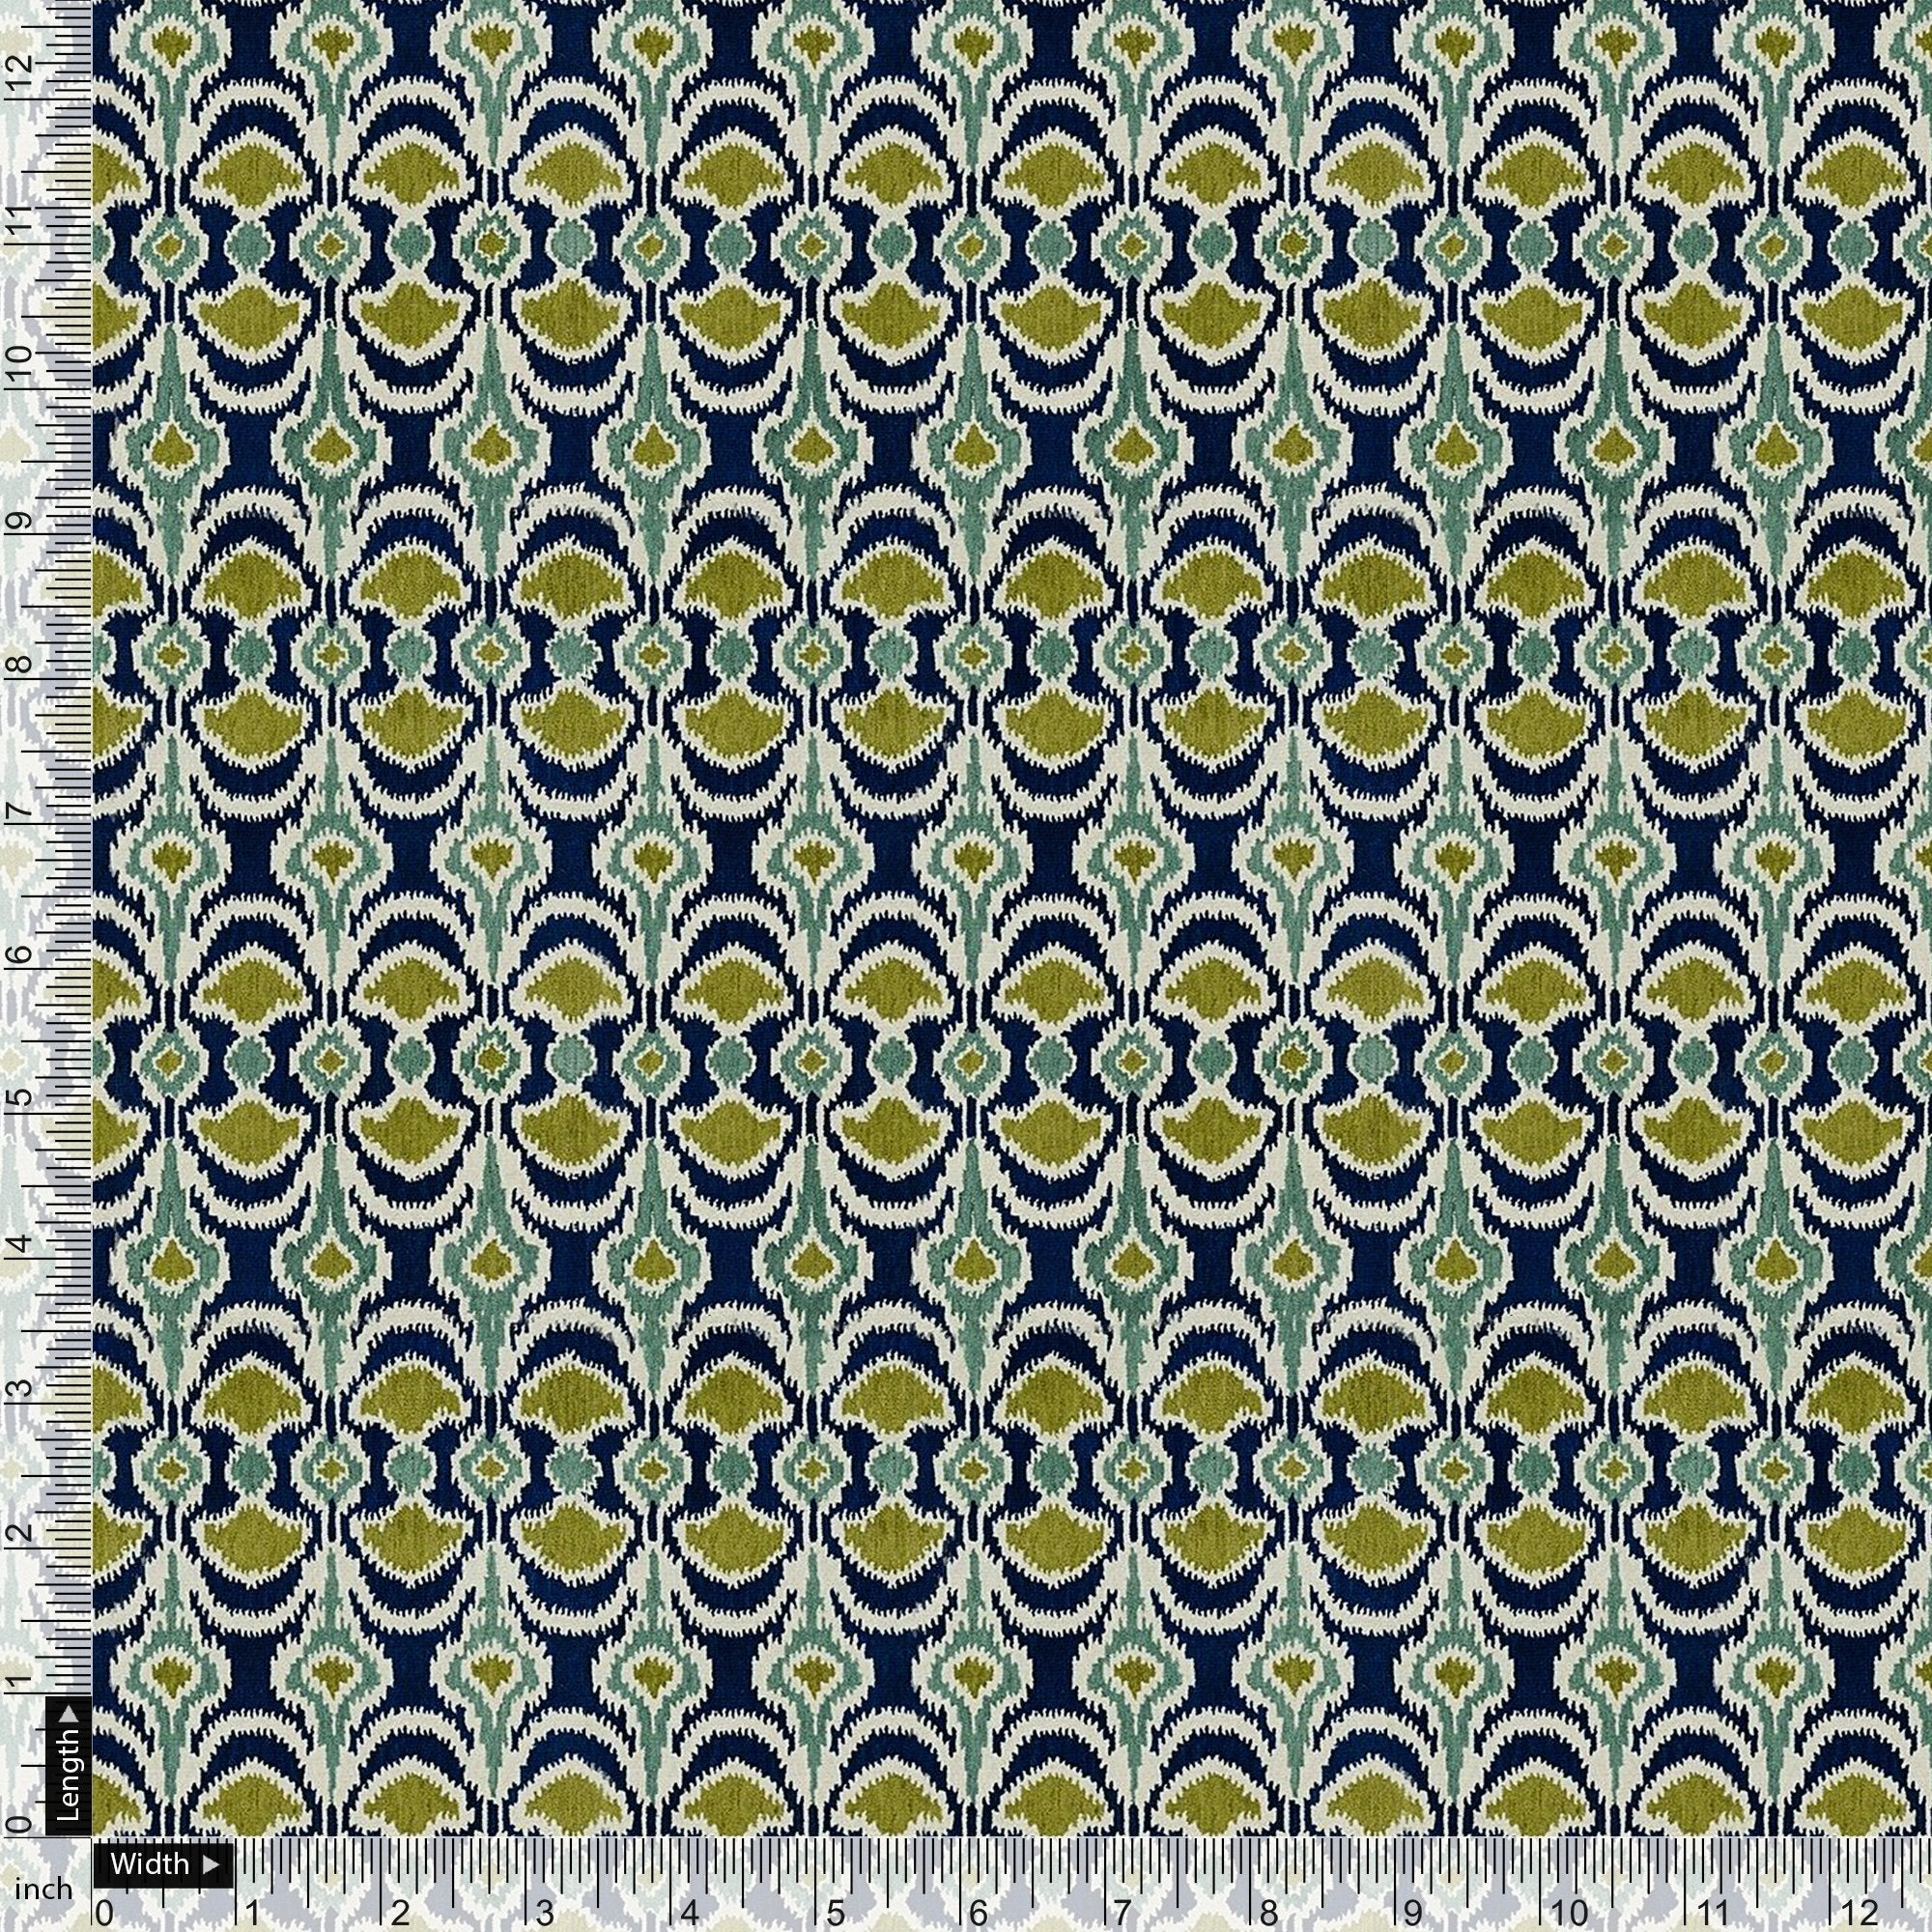 Bead and Reel Pattern Digital Printed Fabric - FAB VOGUE Studio. Shop Fabric @ www.fabvoguestudio.com